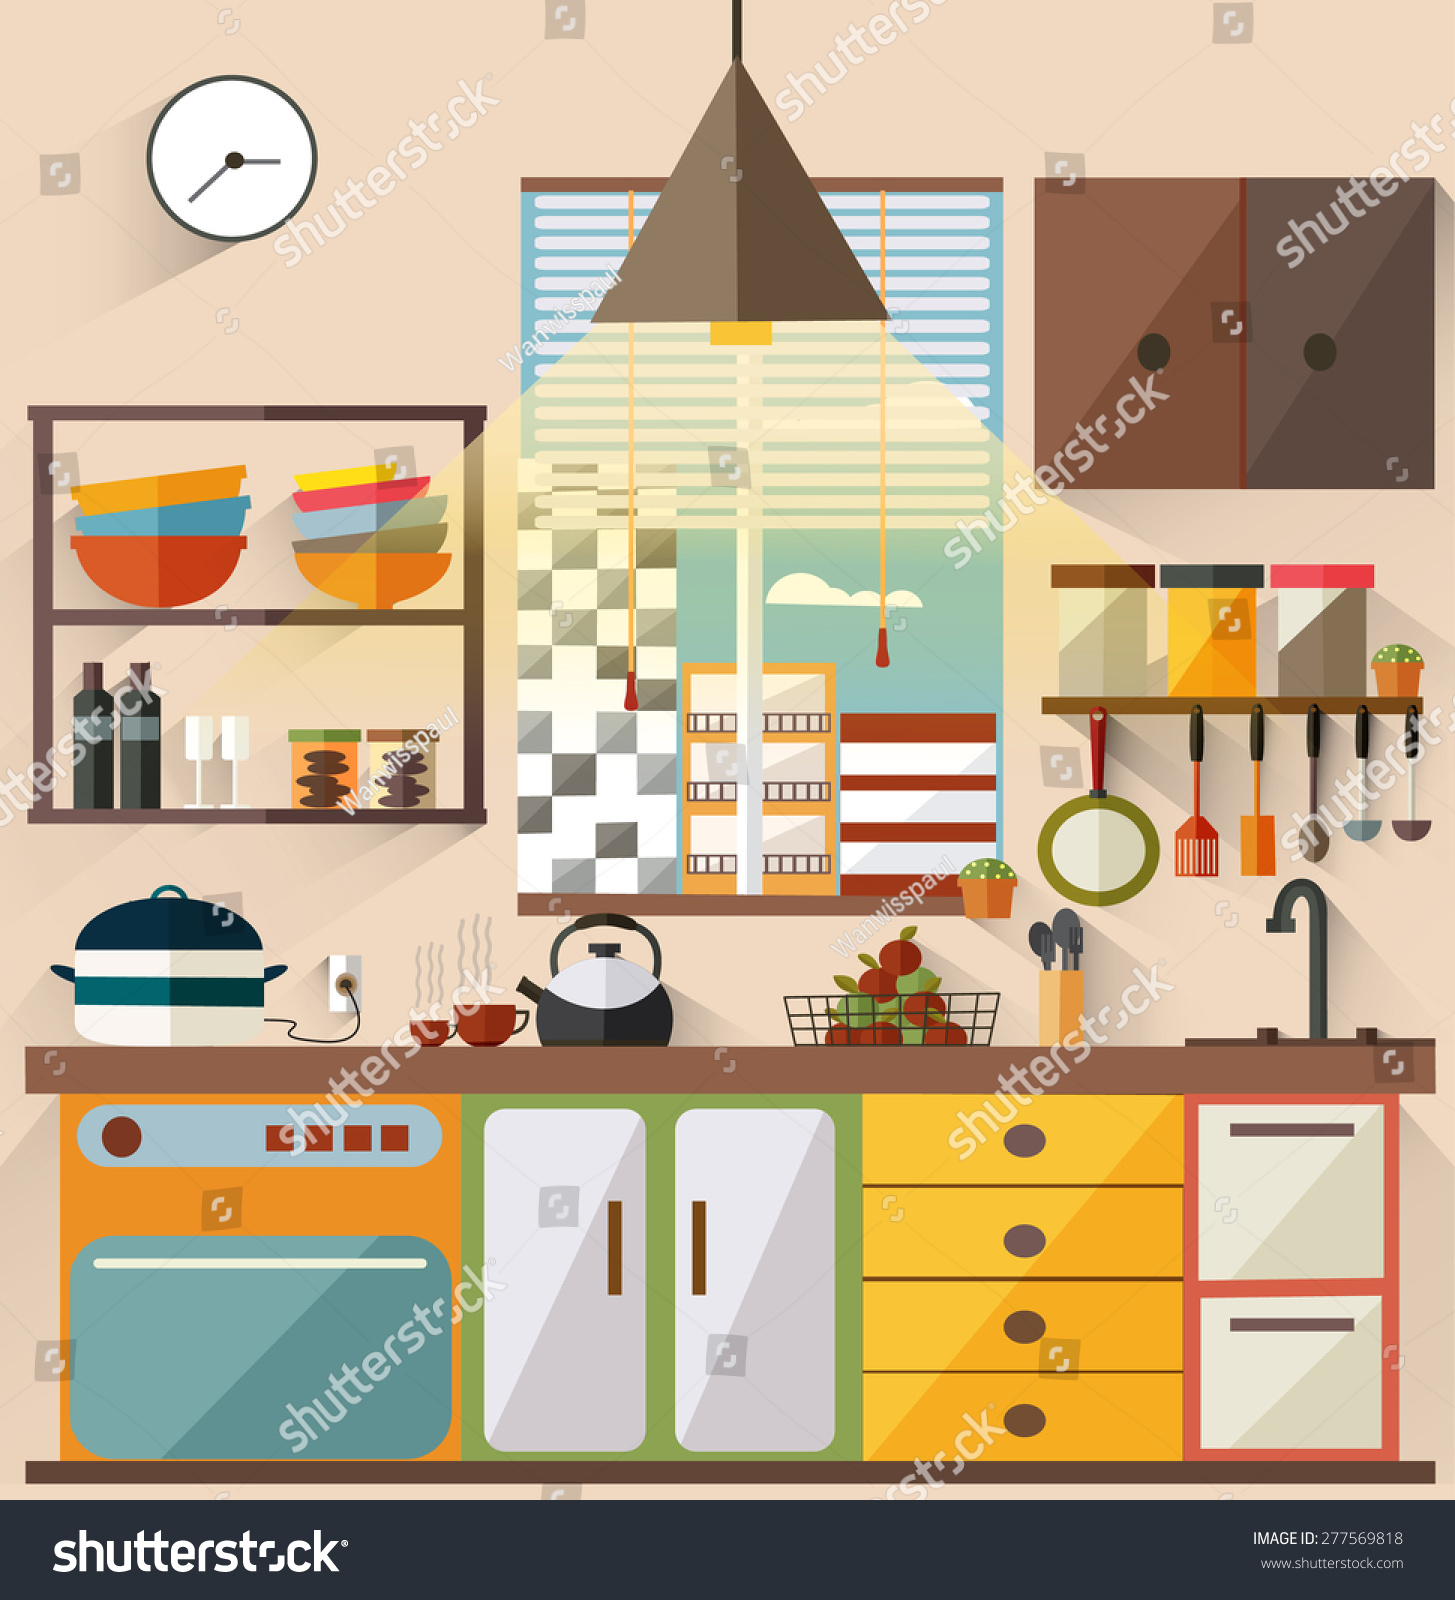 Flat Modern Kitchen Interior Design City Stock Vector